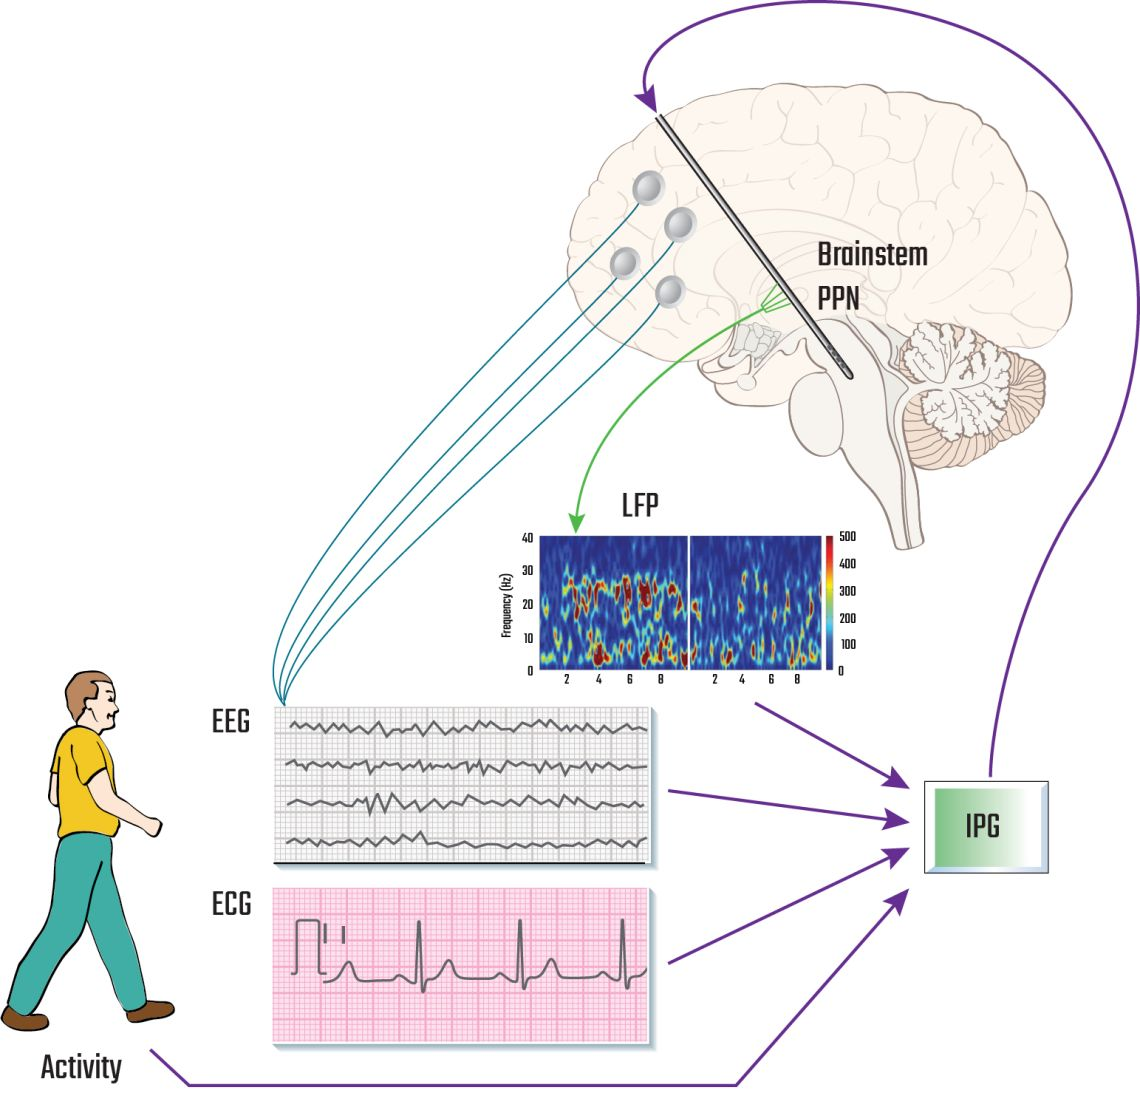 The patients in the trial will be implanted with Deep Brain Stimulating electrodes (connected to an Implantable Pulse Generator) into the PPN (brainstem) and signals from the brain (local field potentials), EEG (electroencephalogram) and other signals, such as physical activity, will be used to control the system in a 'closed loop' manner.